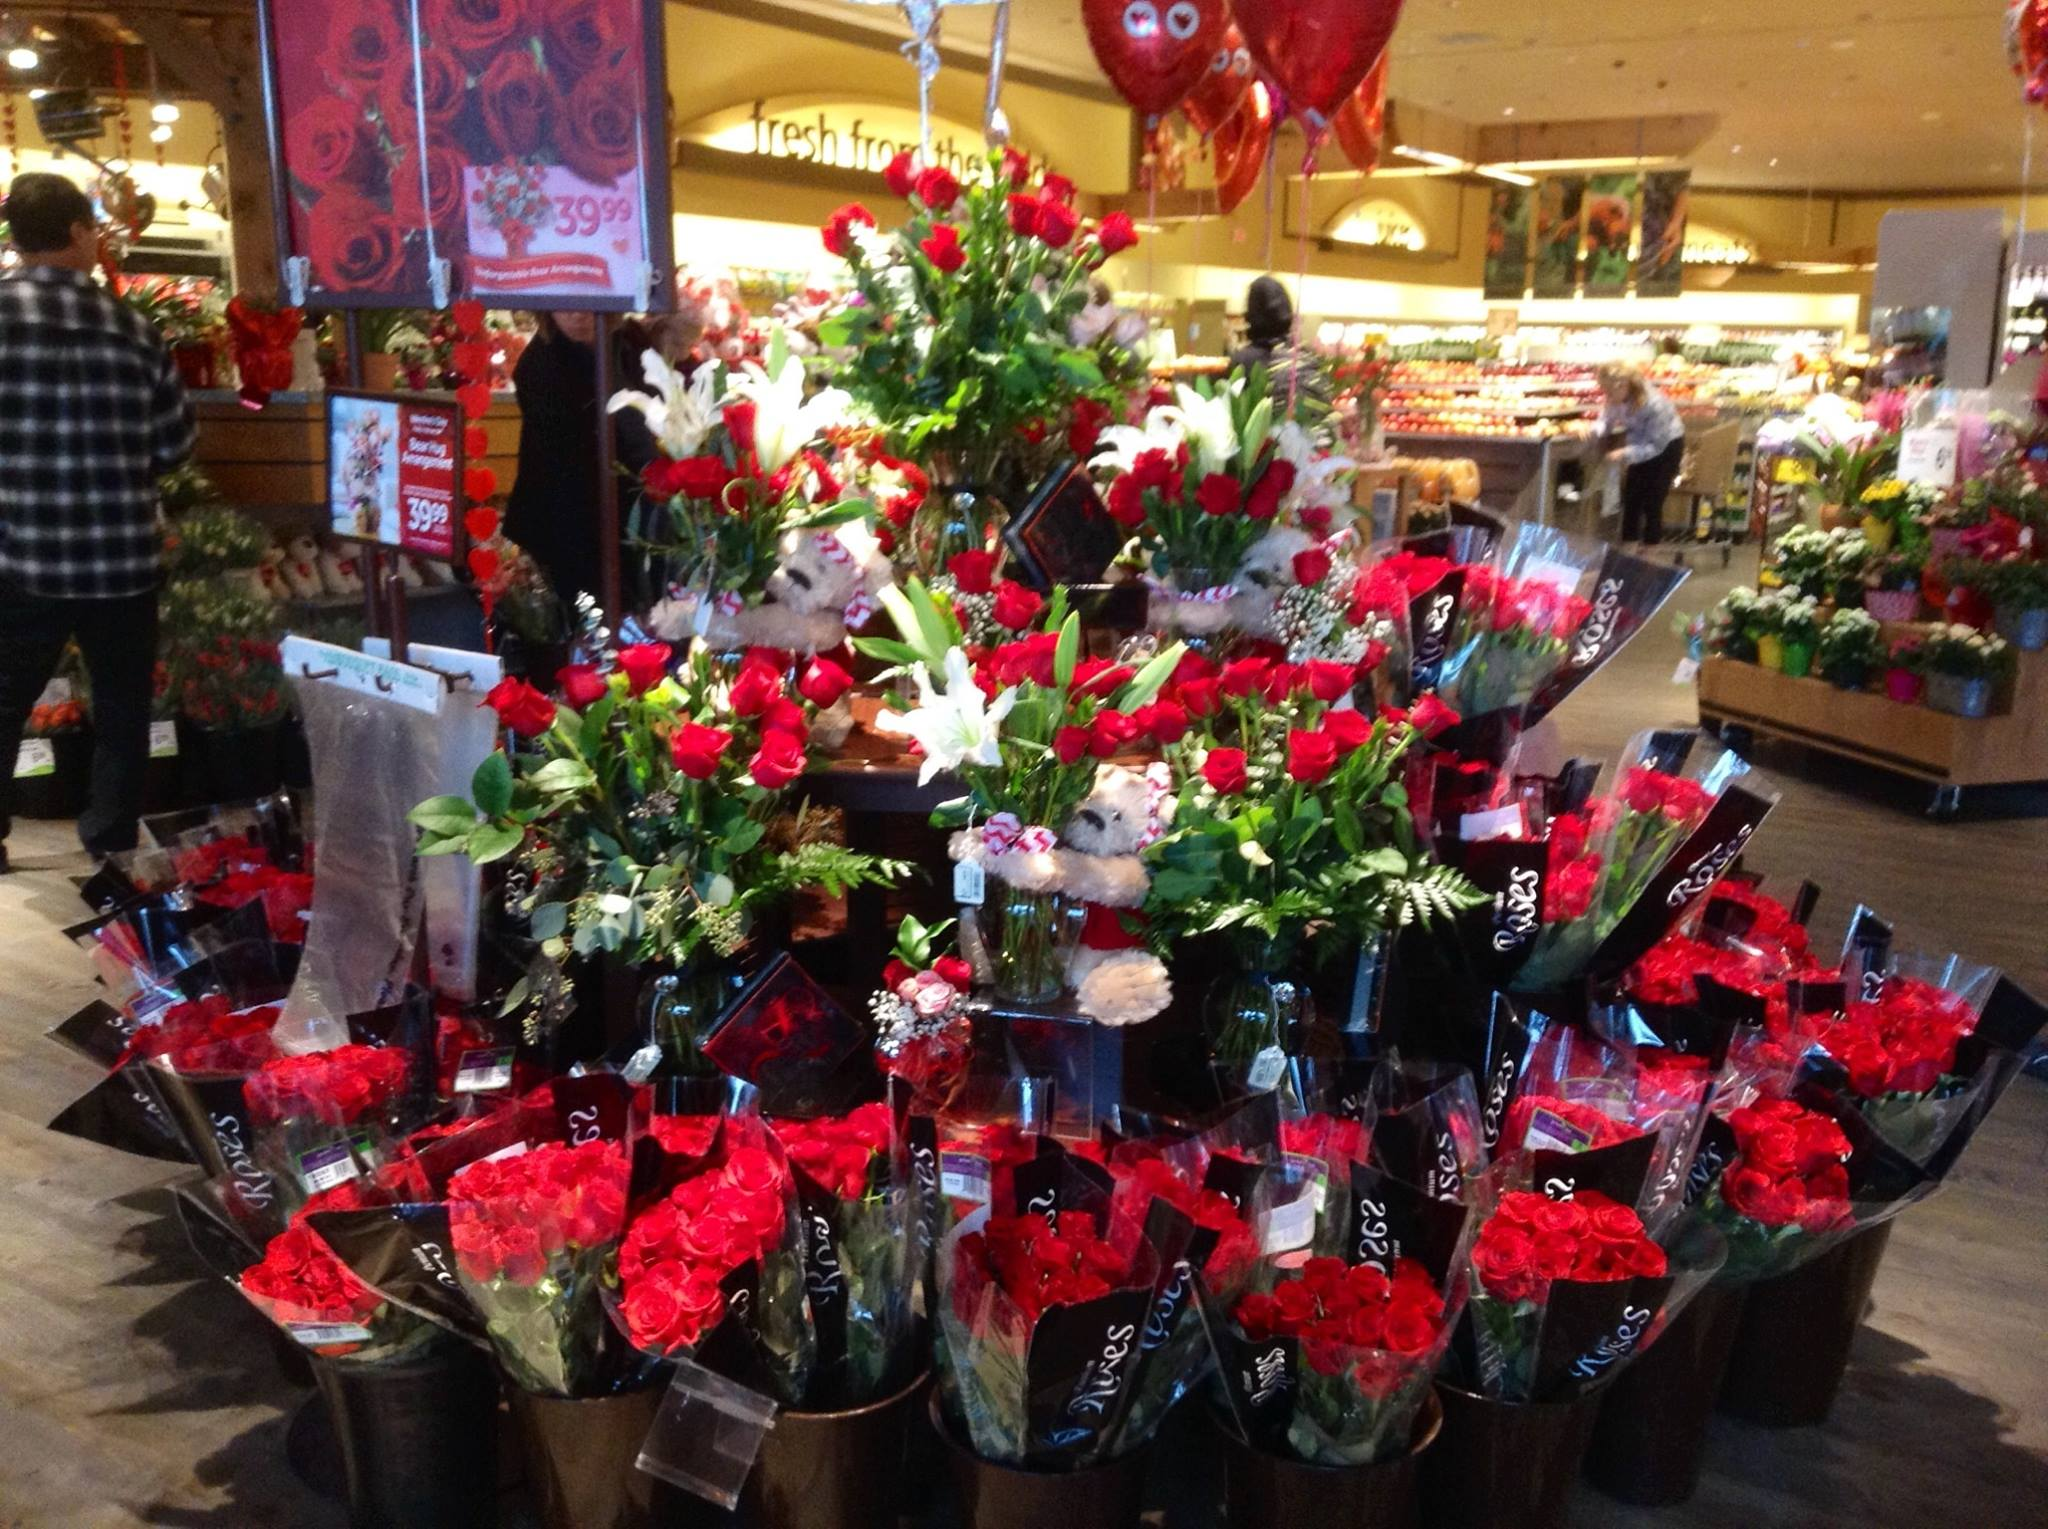 the-welcome-blog-tours-of-new-york-safeway-market